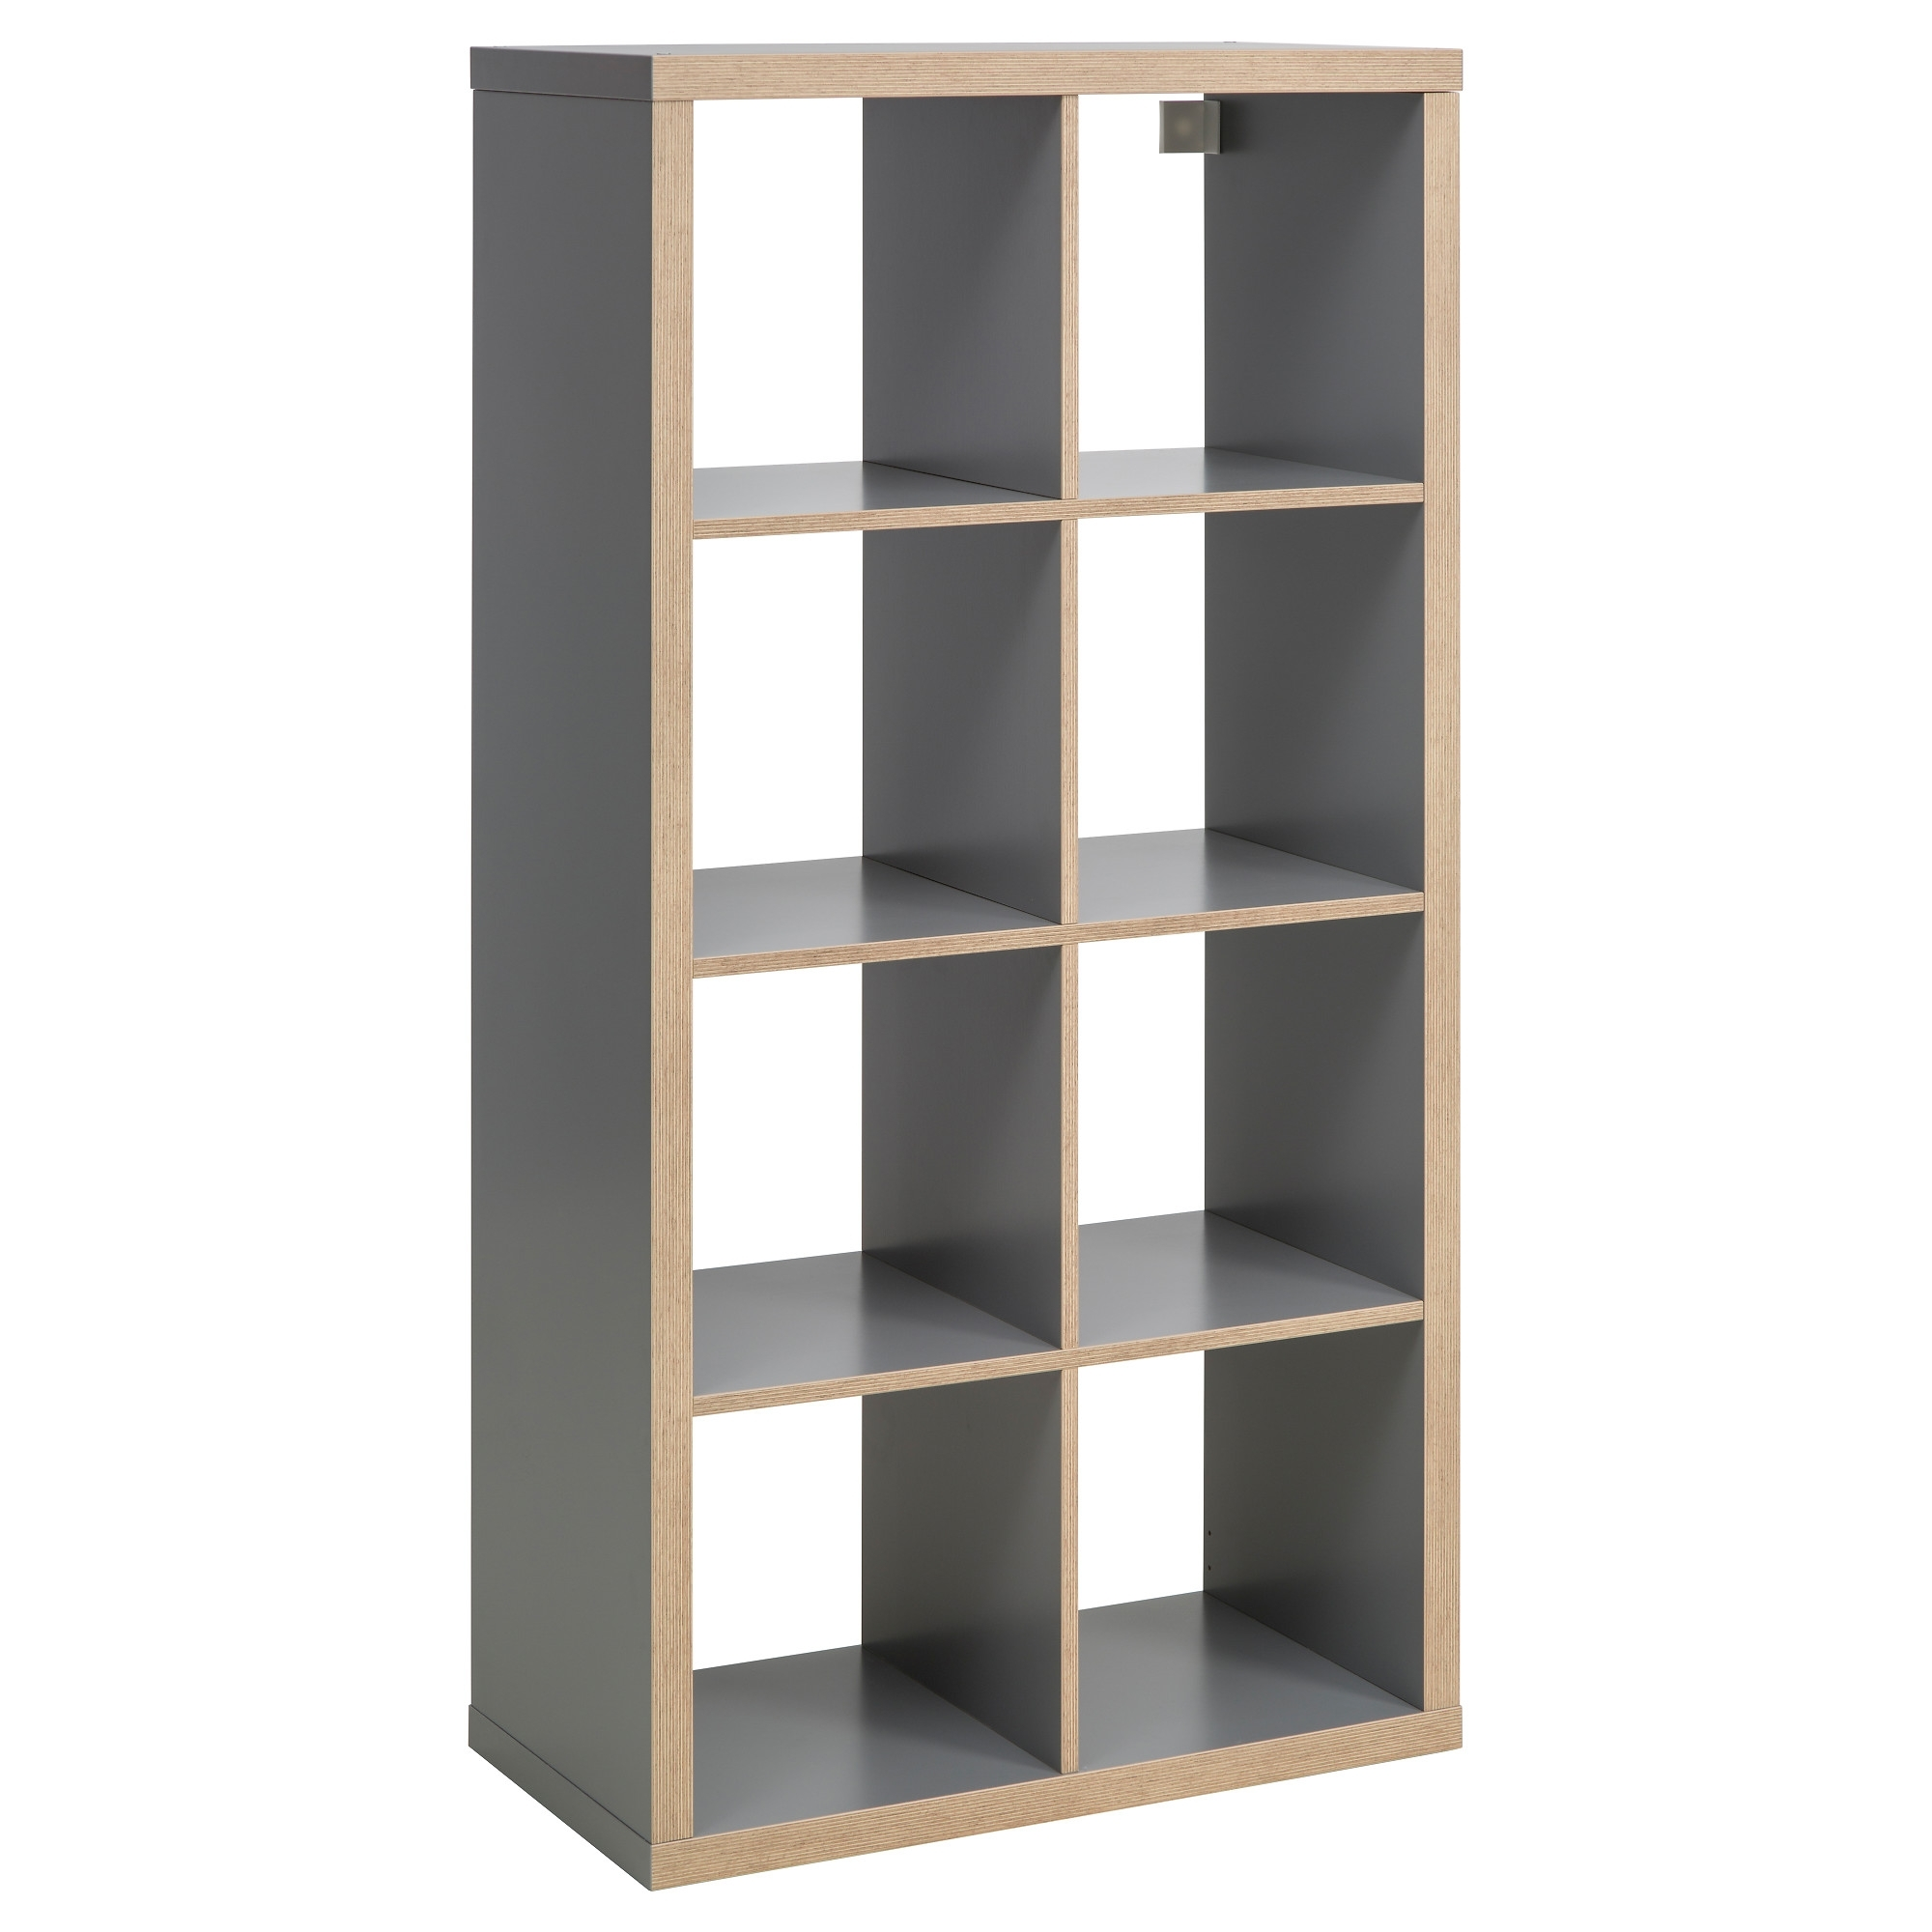 Ikea Cube Bookcases Pertaining To Widely Used Kallax Shelf Unit – Birch Effect – Ikea (View 6 of 15)